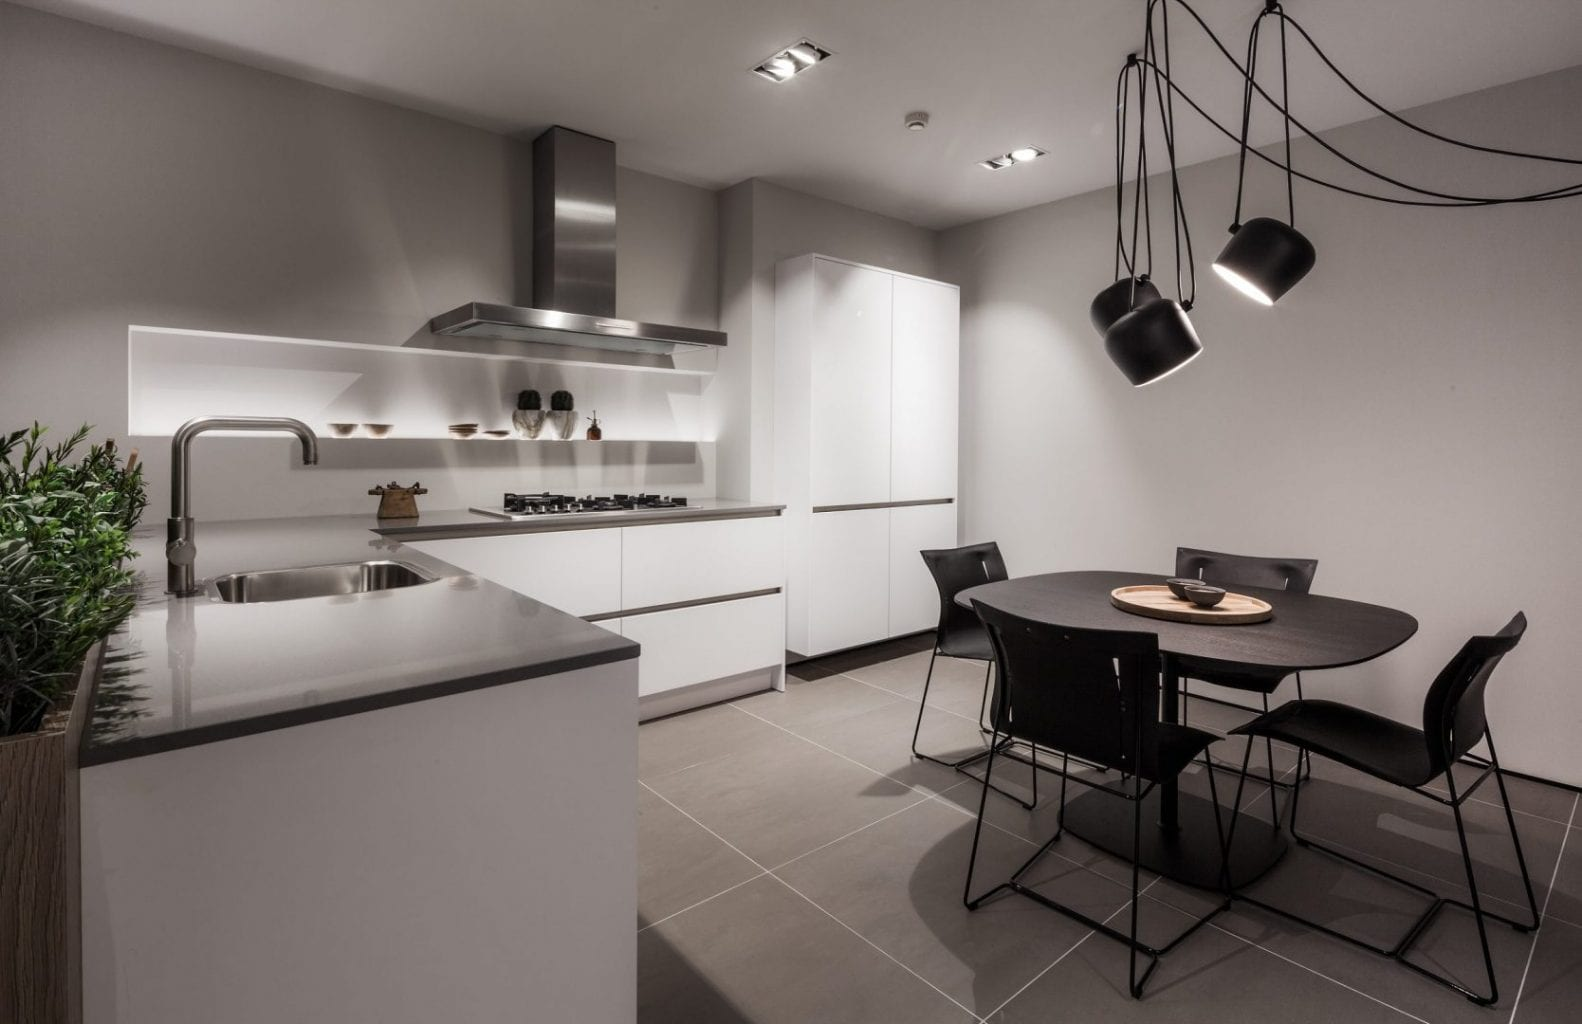 Siematic Showroomkeukens Siematic Urban Keuken S2 Goergen Keukens Uw Siematic Dealer